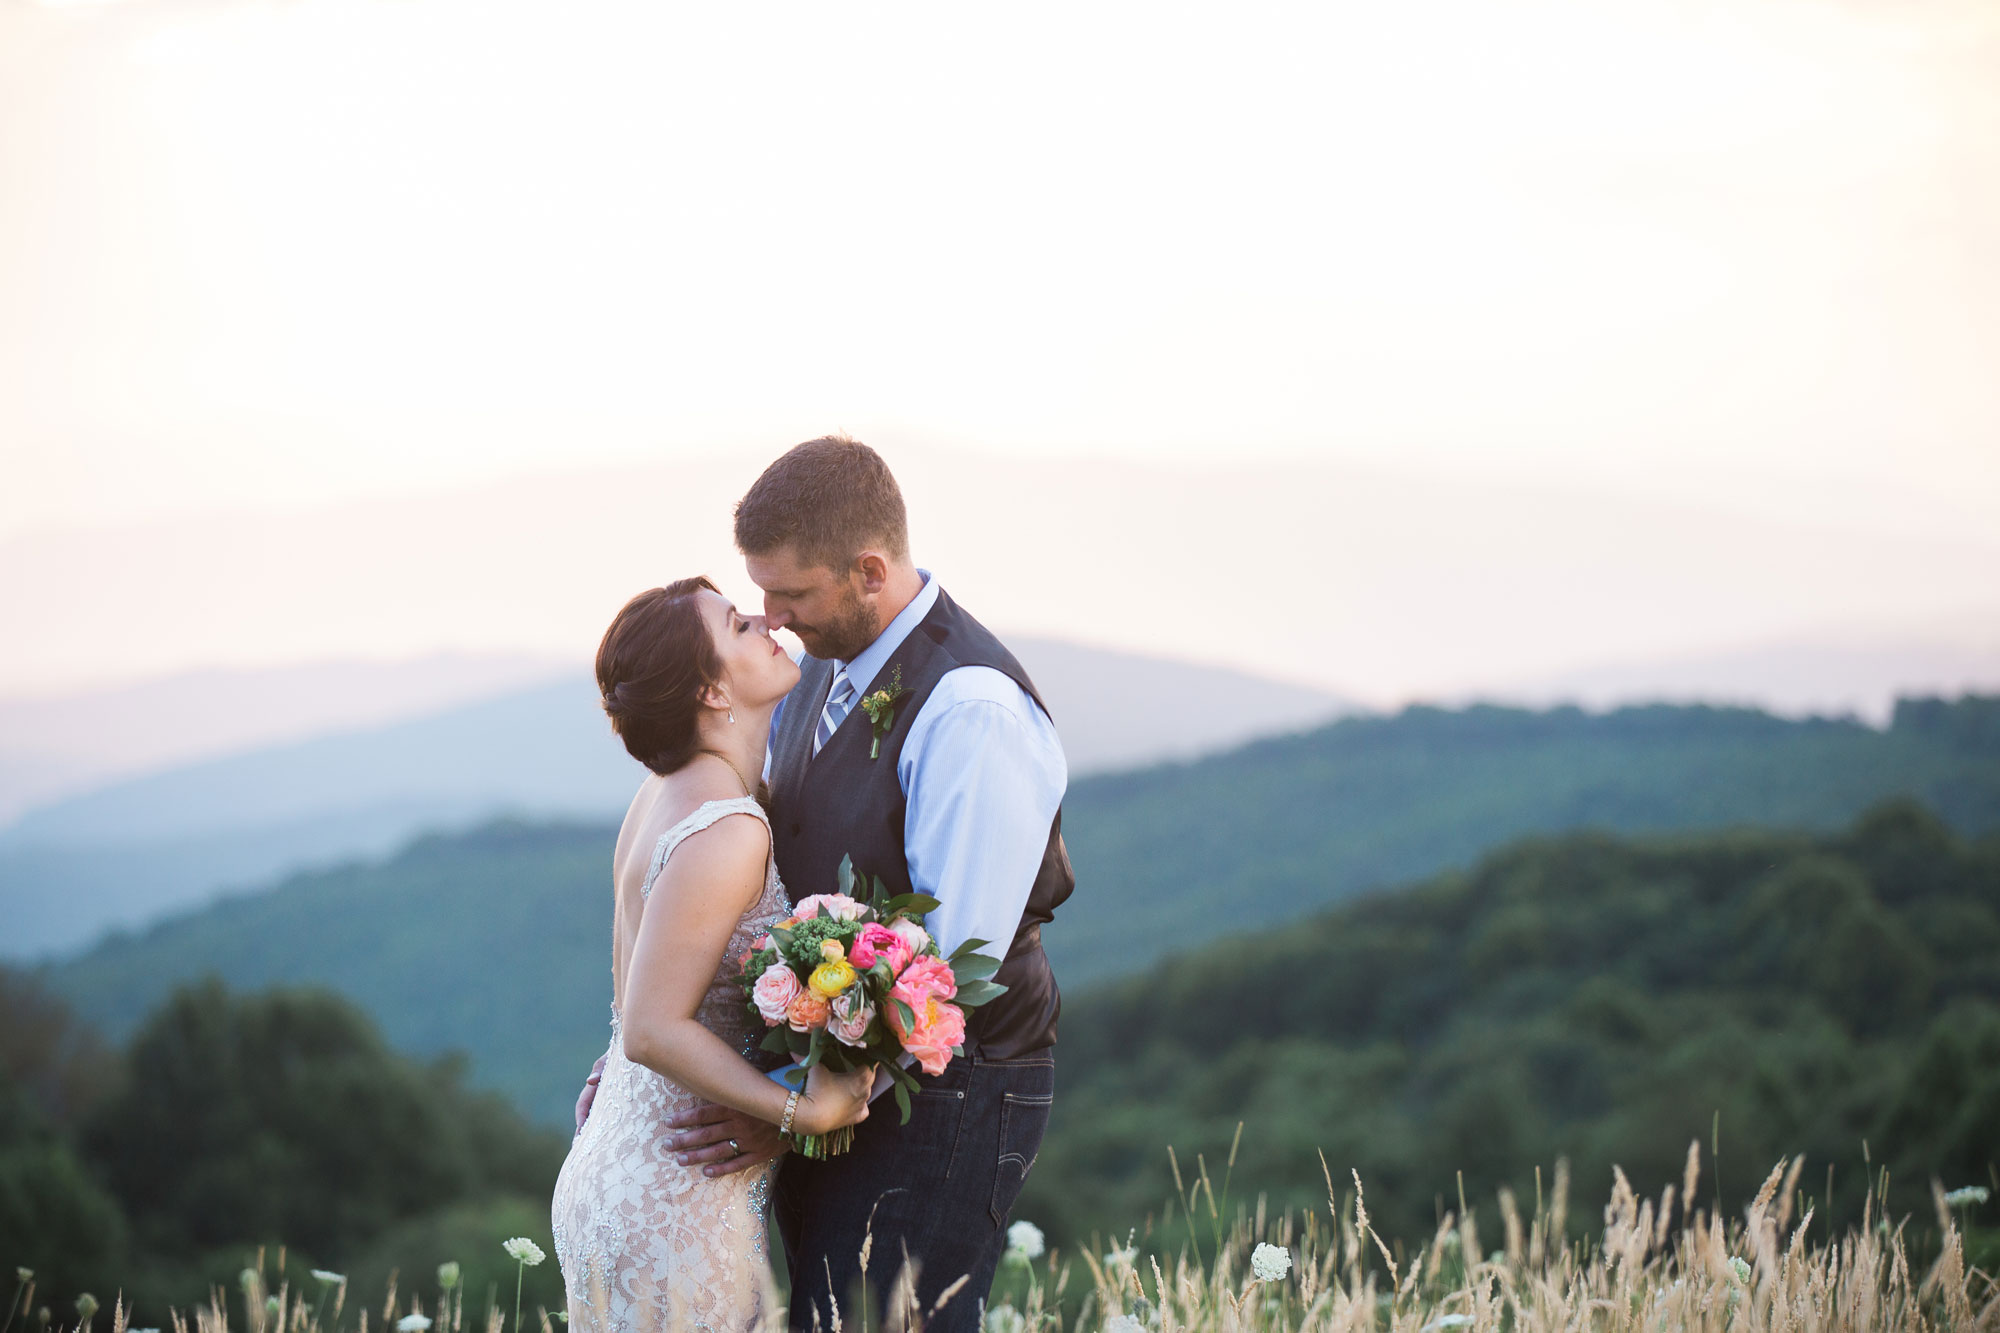 A Magical Summer Mountaintop Elopement in Asheville, North Carolina